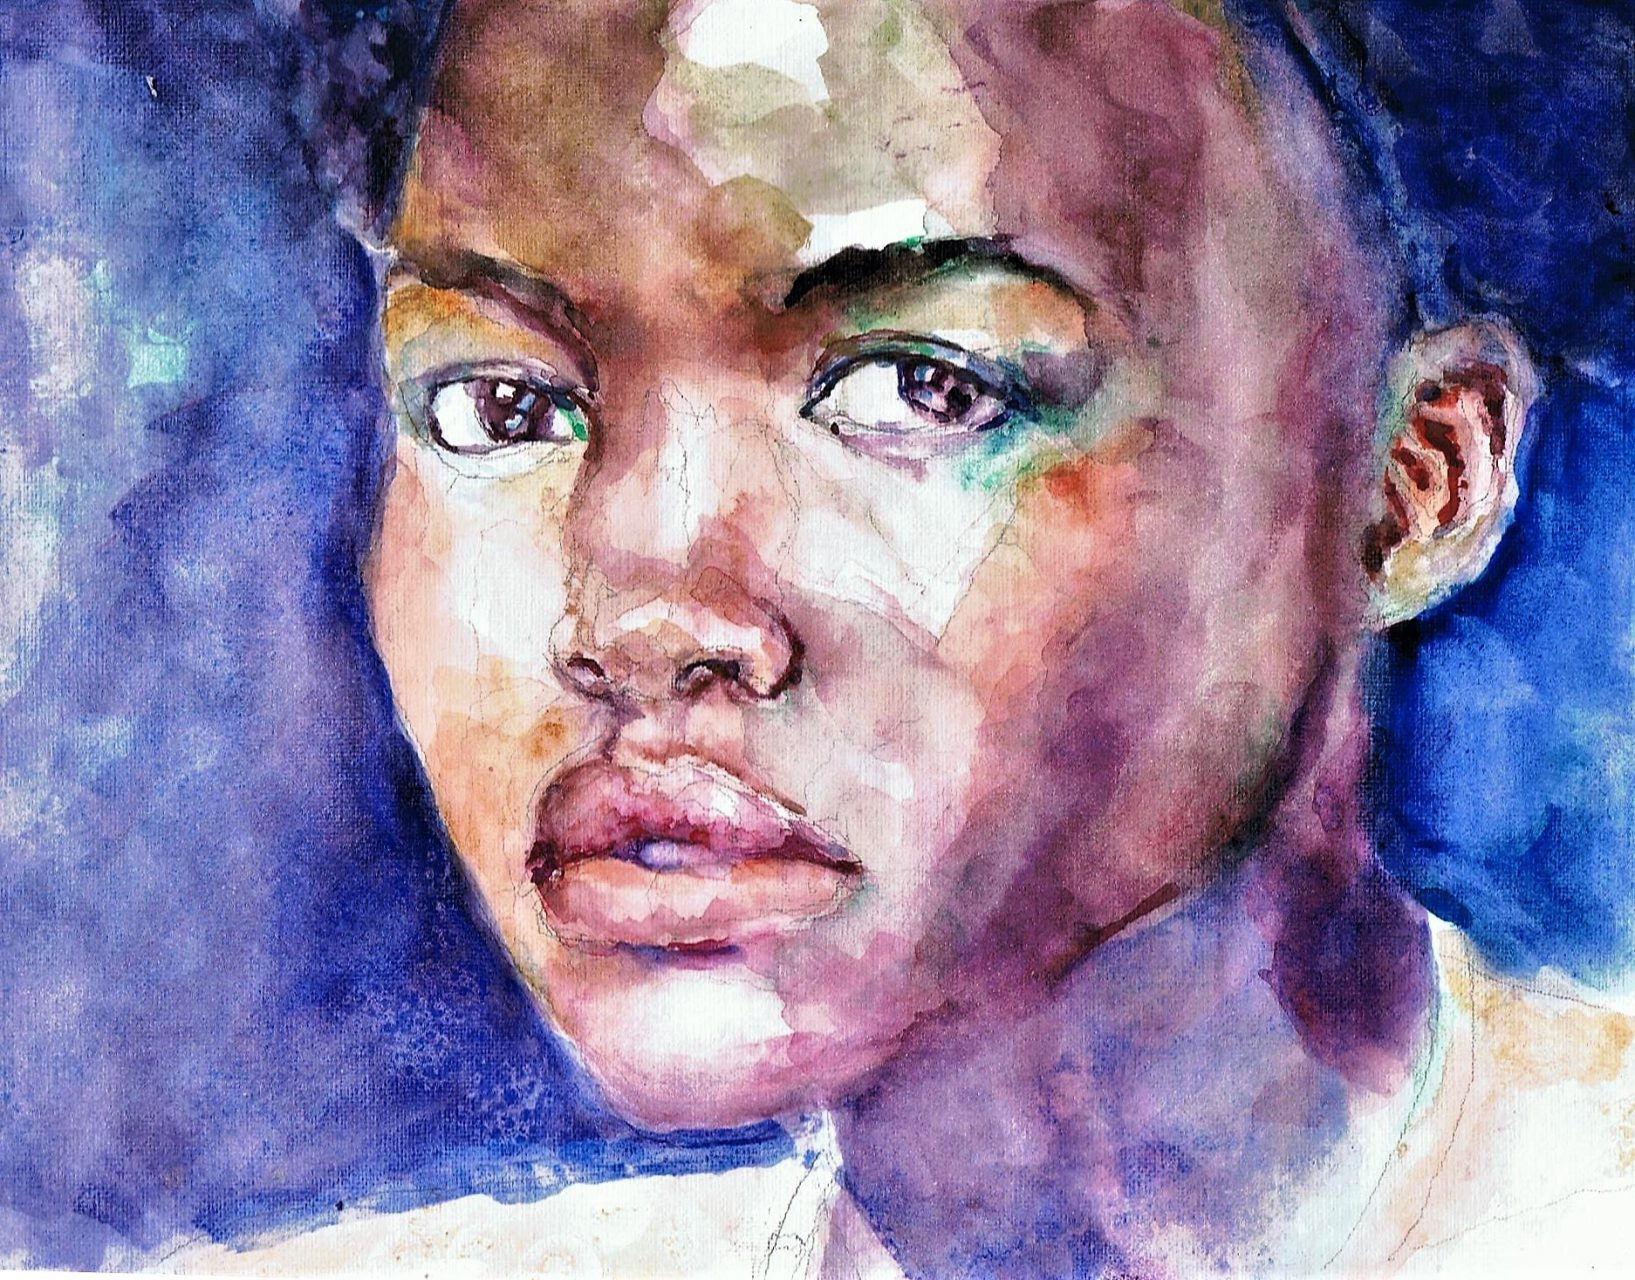 365 dagen een portret 146 Lupita Nuong'o, actrice Aquarel 19c25